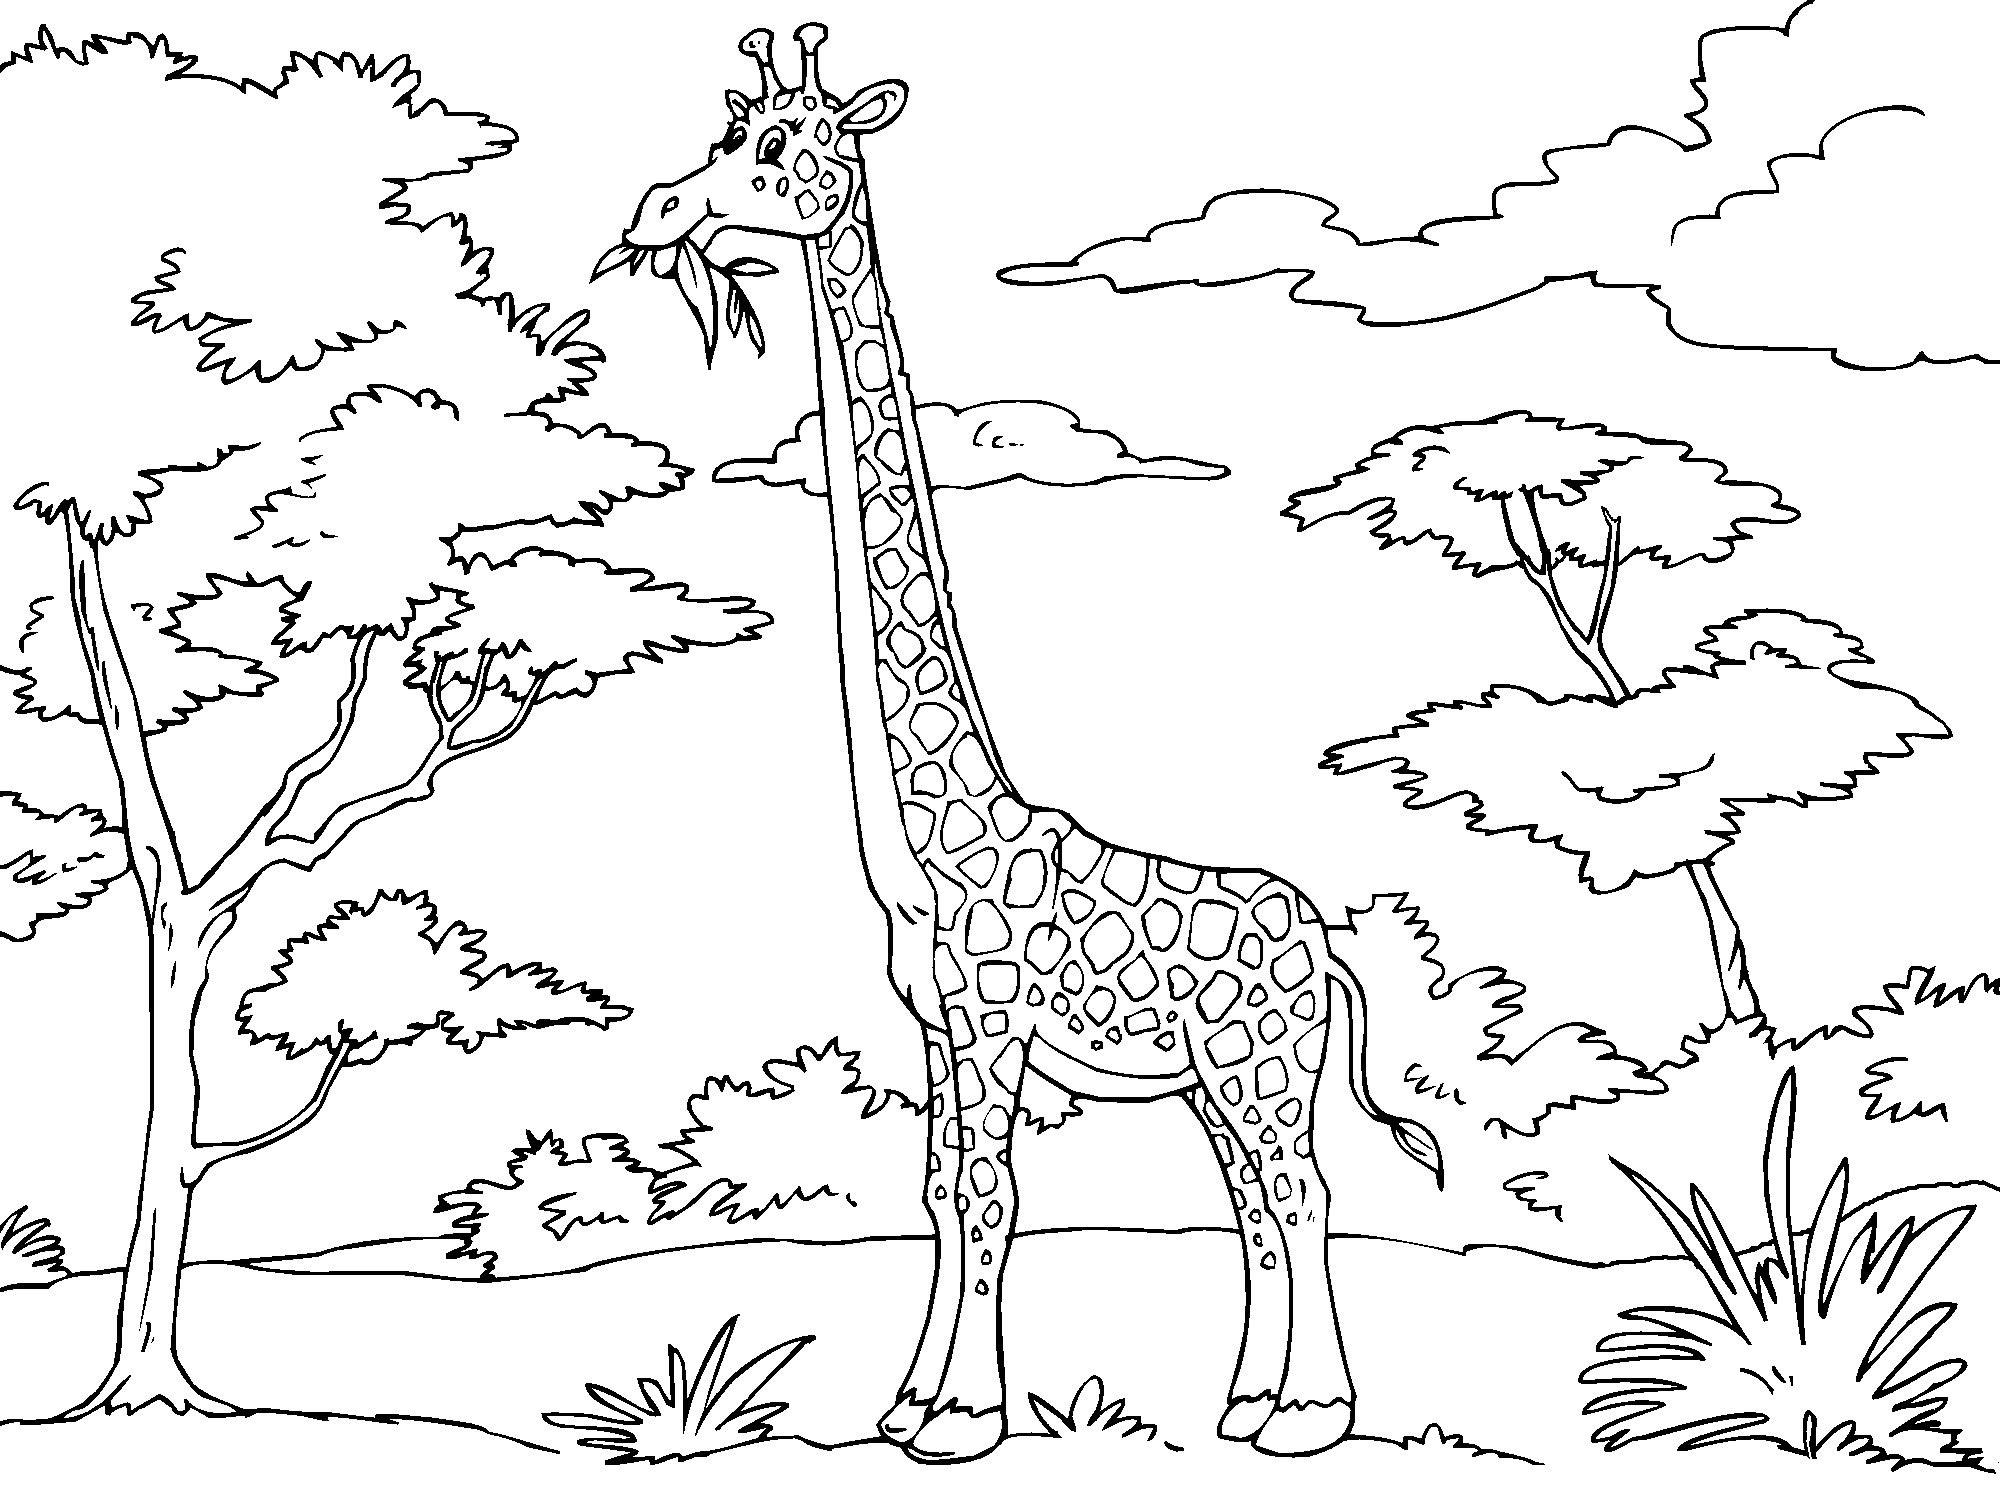 2000x1500 Print Download Giraffe Coloring Pages For Kids To Have Fun